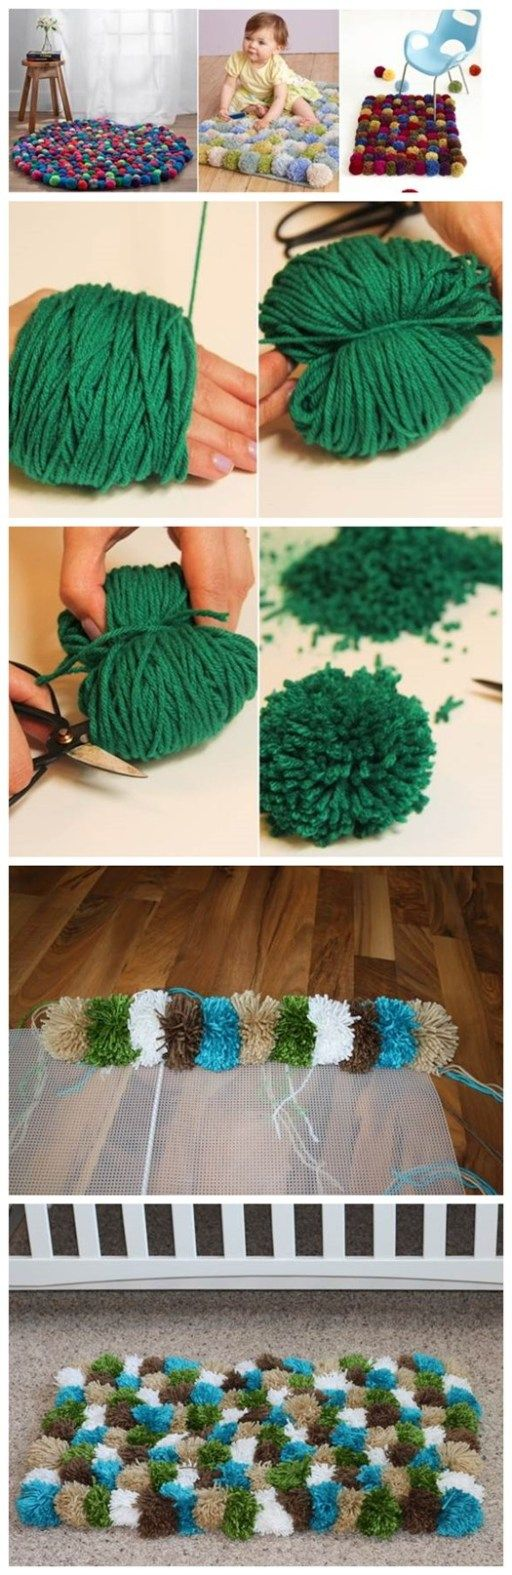 How To Make DIY Pom Pom Rugs Tutorial | DIY Tag-when we have a Pinterest craft day!!!!